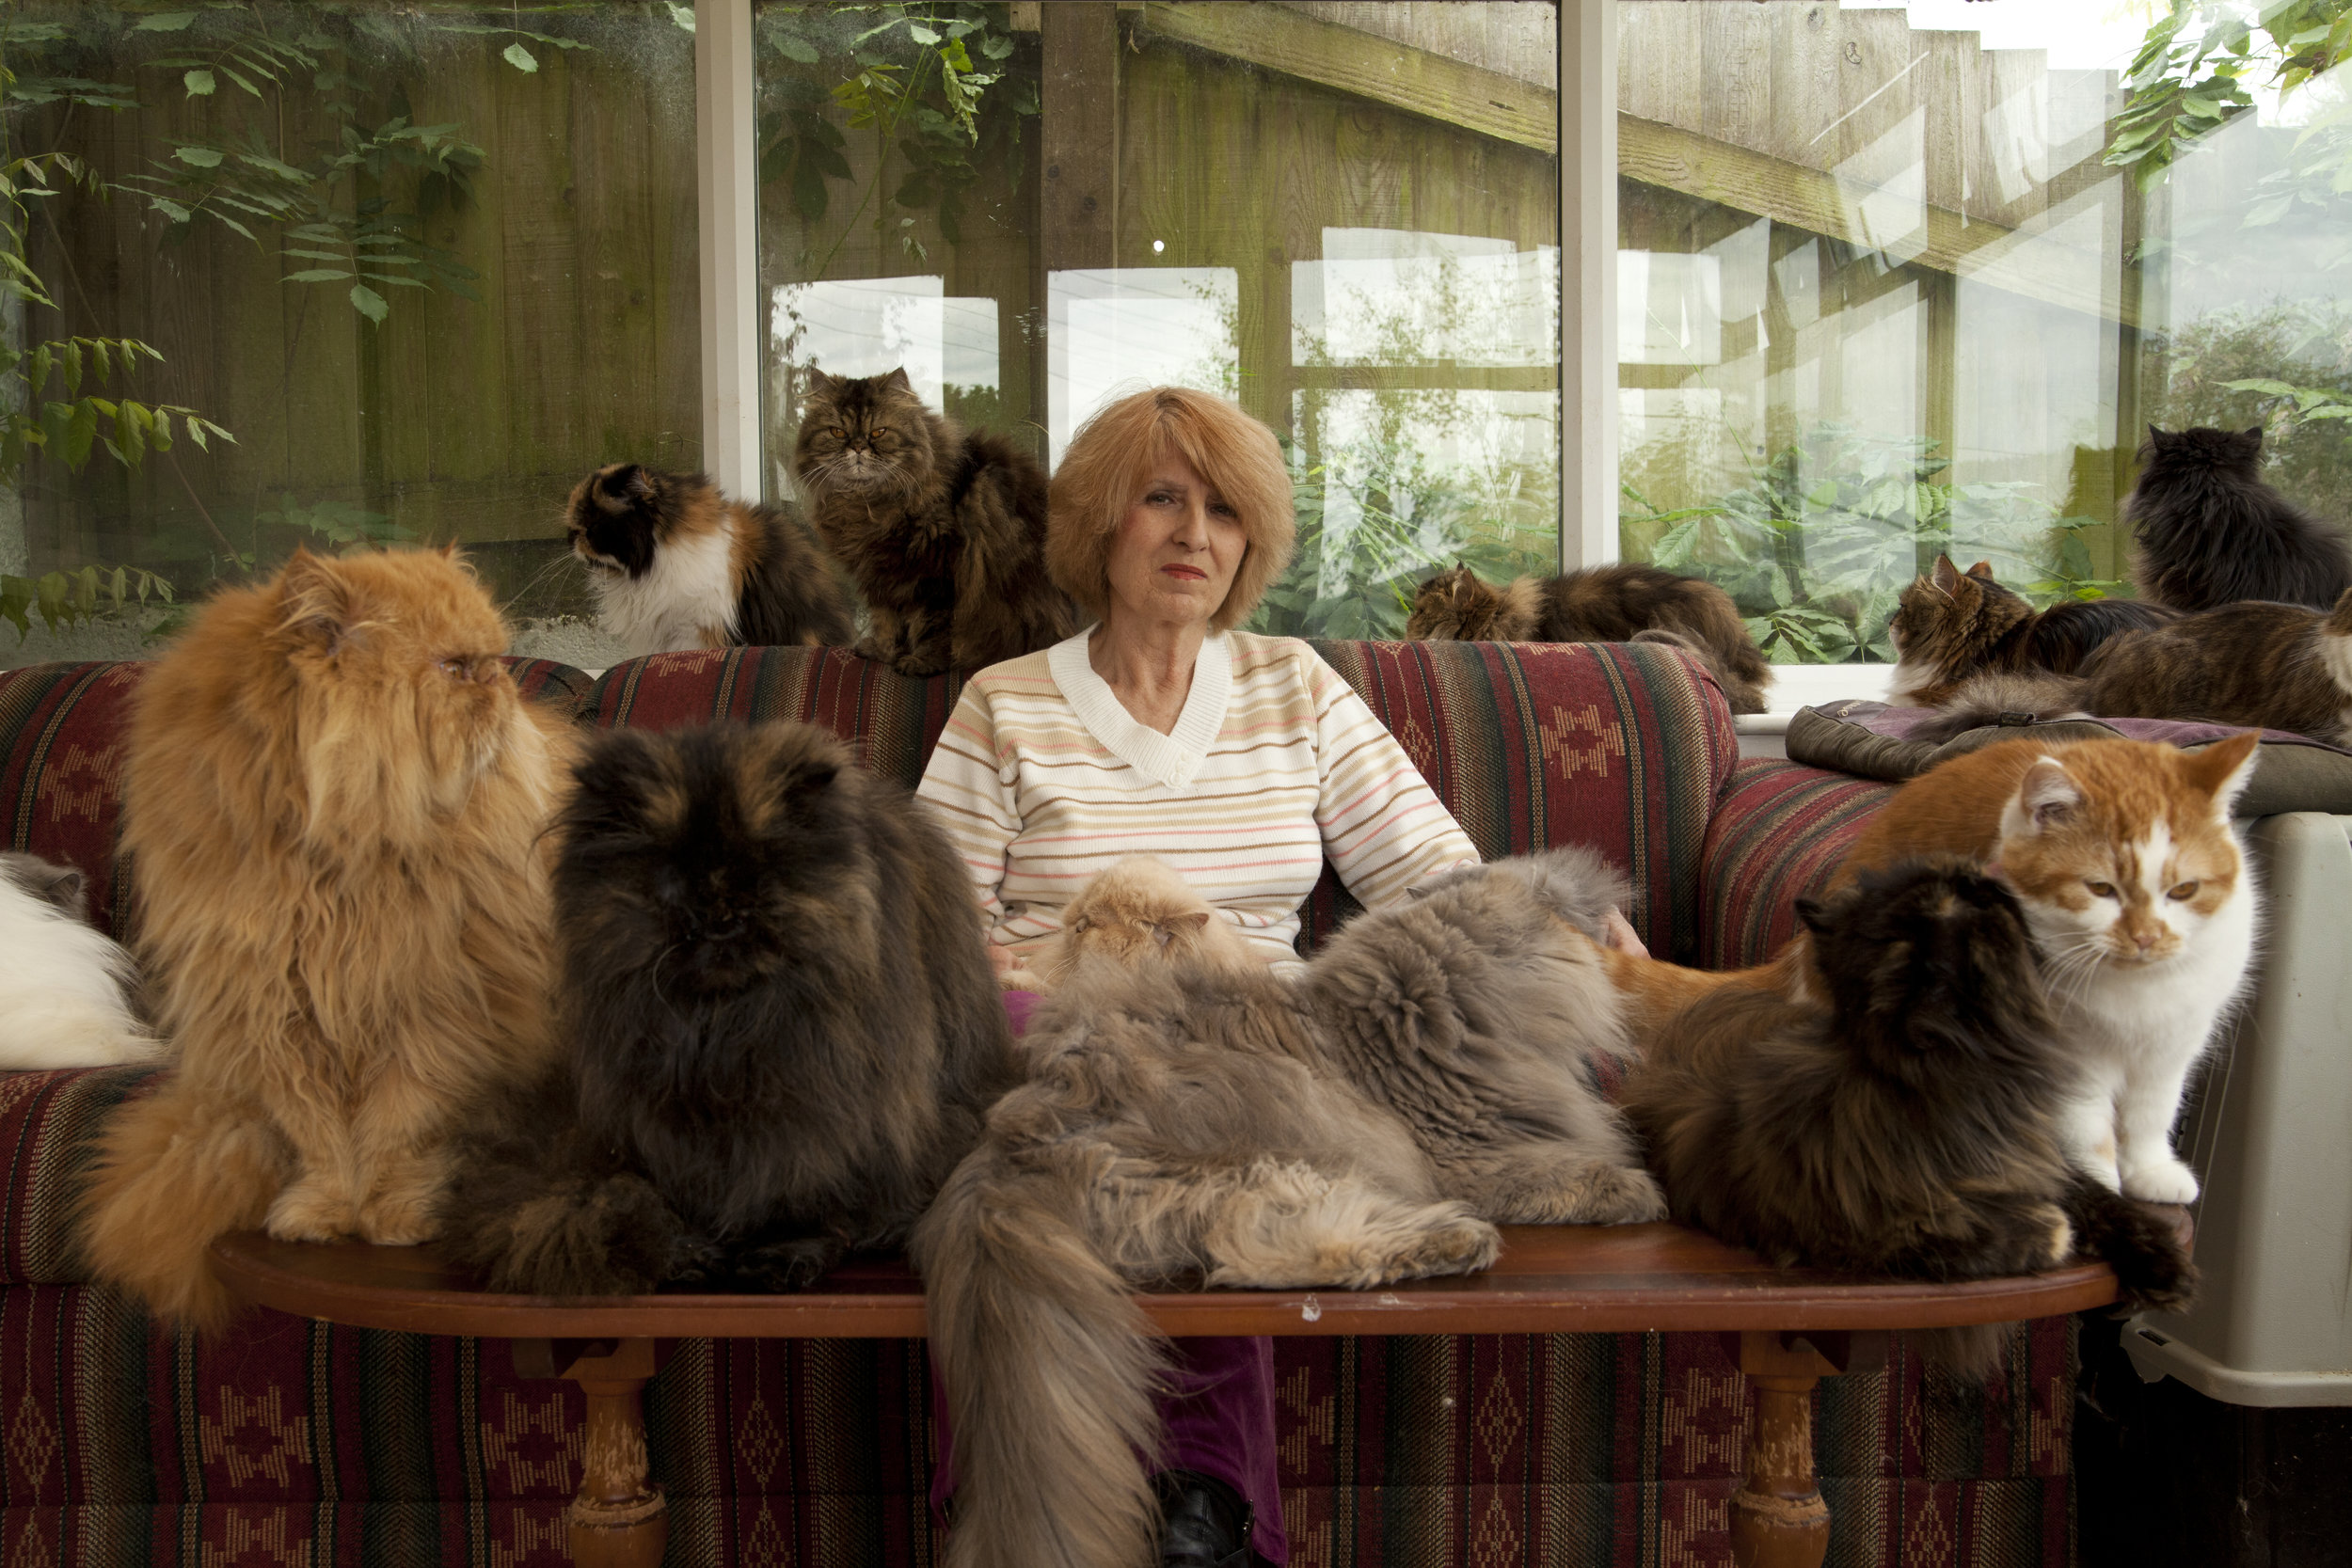 The Woman with 40 Cats, C5